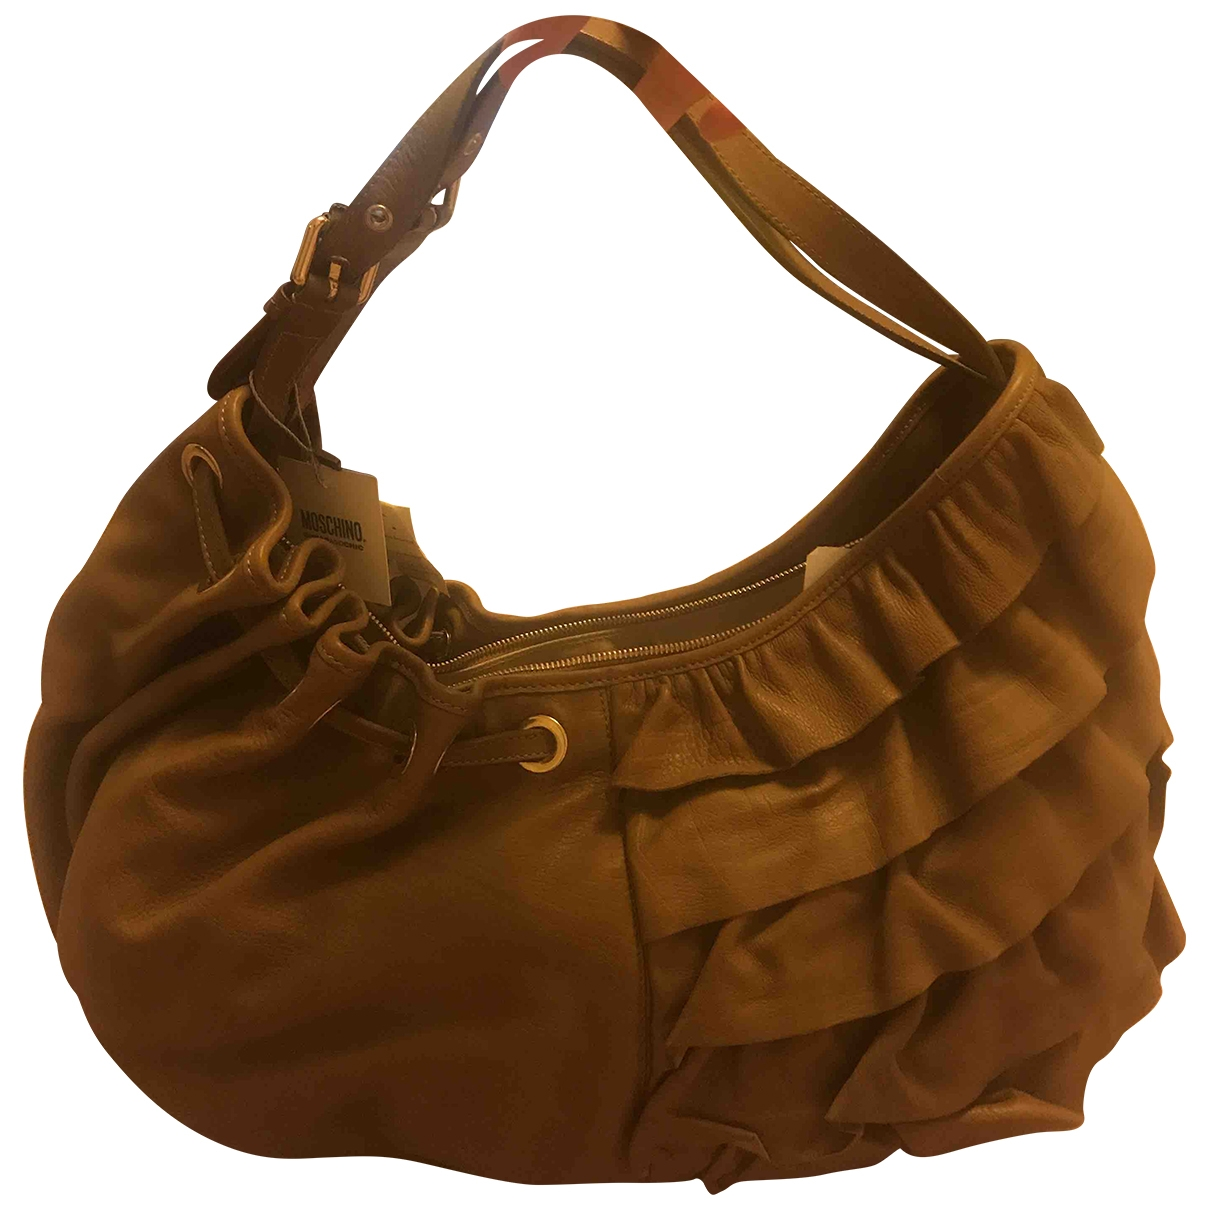 Moschino Cheap And Chic \N Camel Leather handbag for Women \N